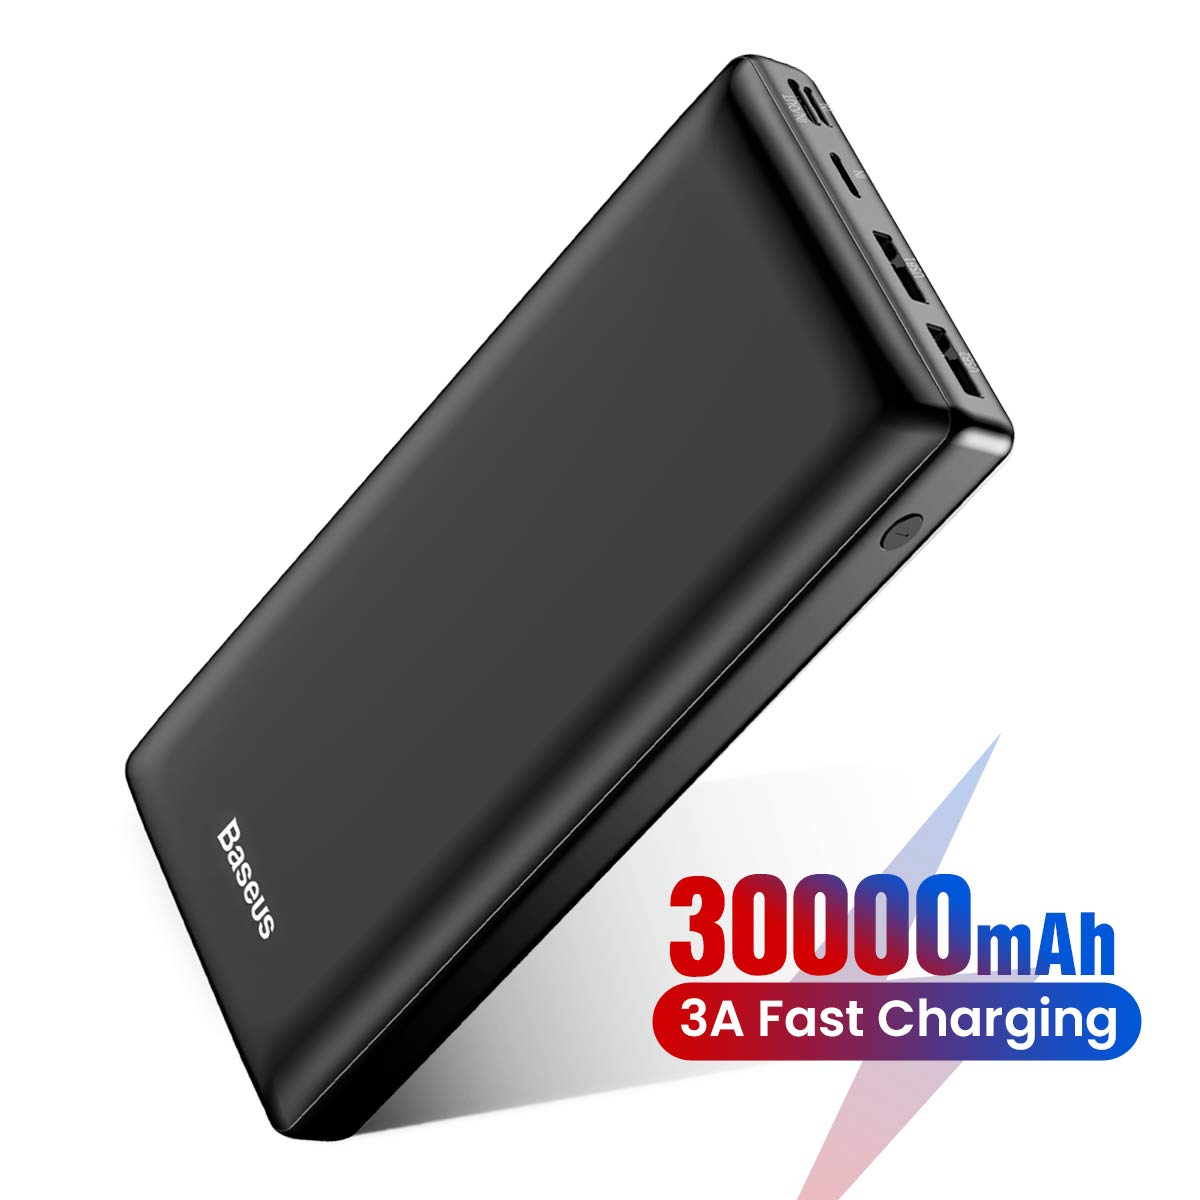 Baseus Power Bank, Caricatore Portatile 30000 mAh USB